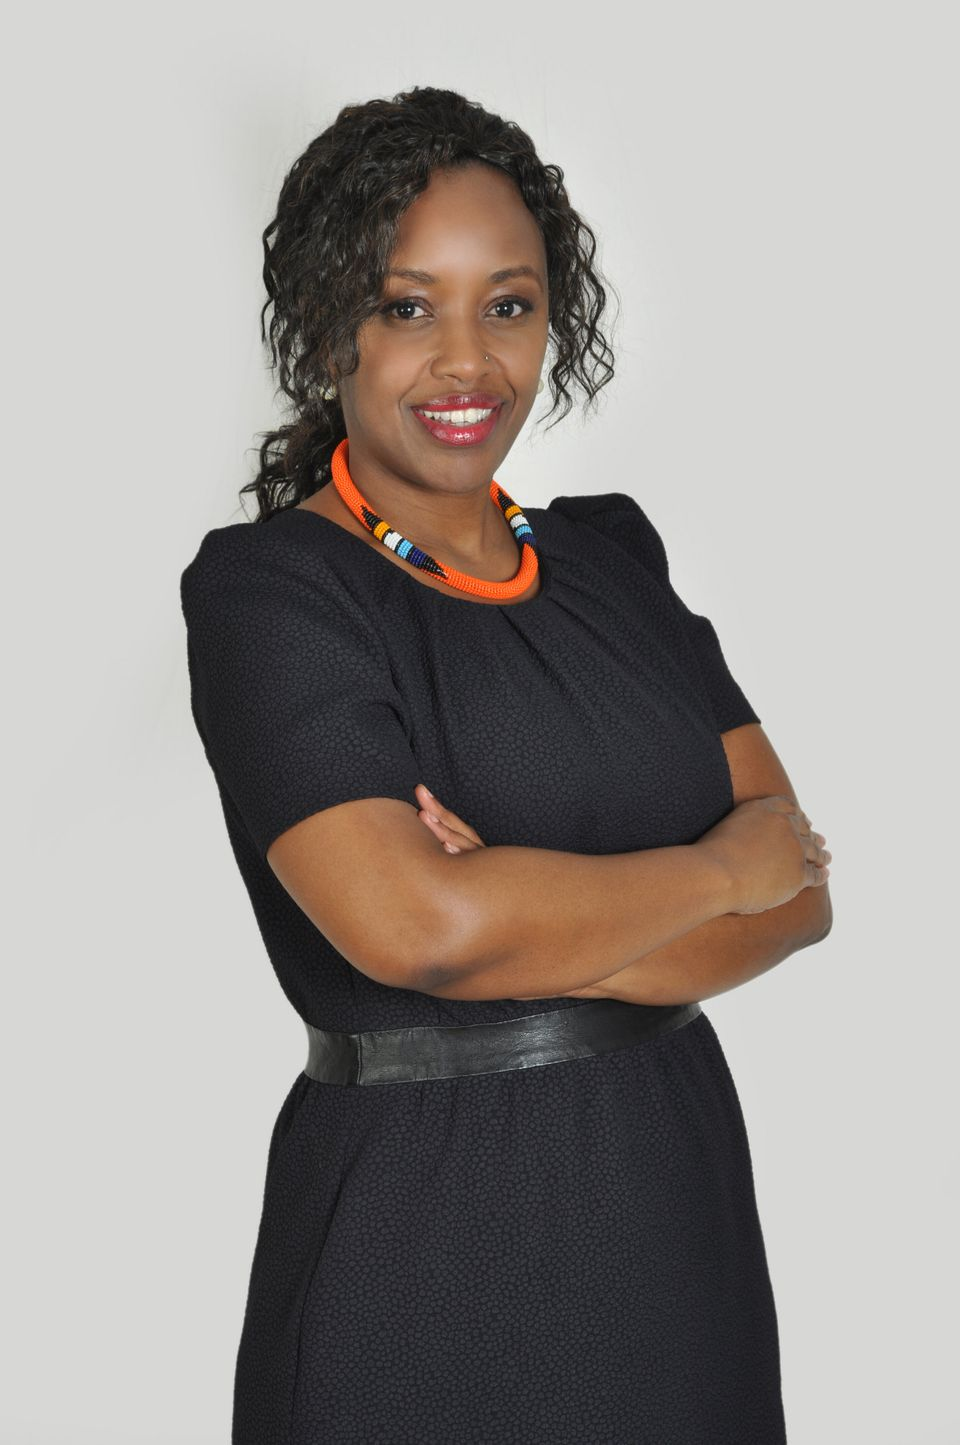 Naisola Likimani': 'A new normal where all women, everywhere, decide about their